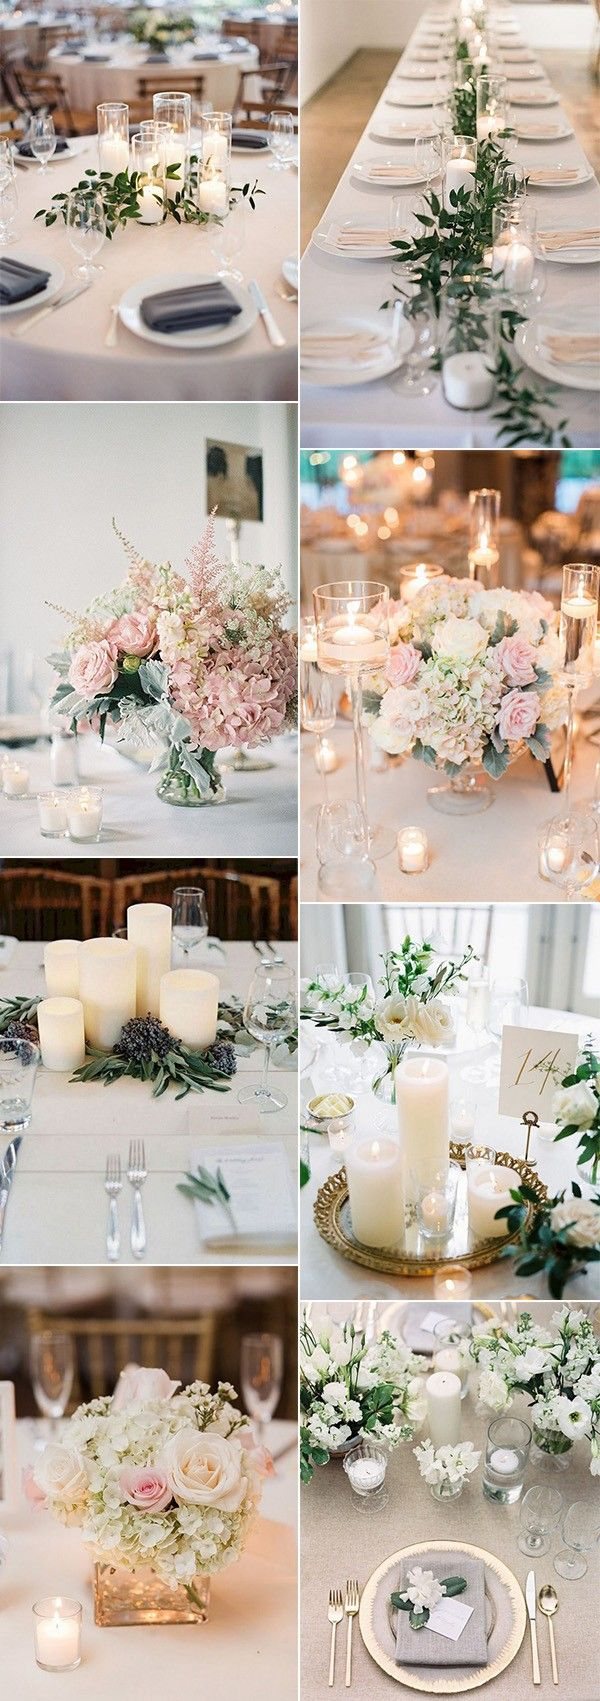 Elegant wedding decoration ideas   Elegant Wedding Centerpieces with Candles for  Trends